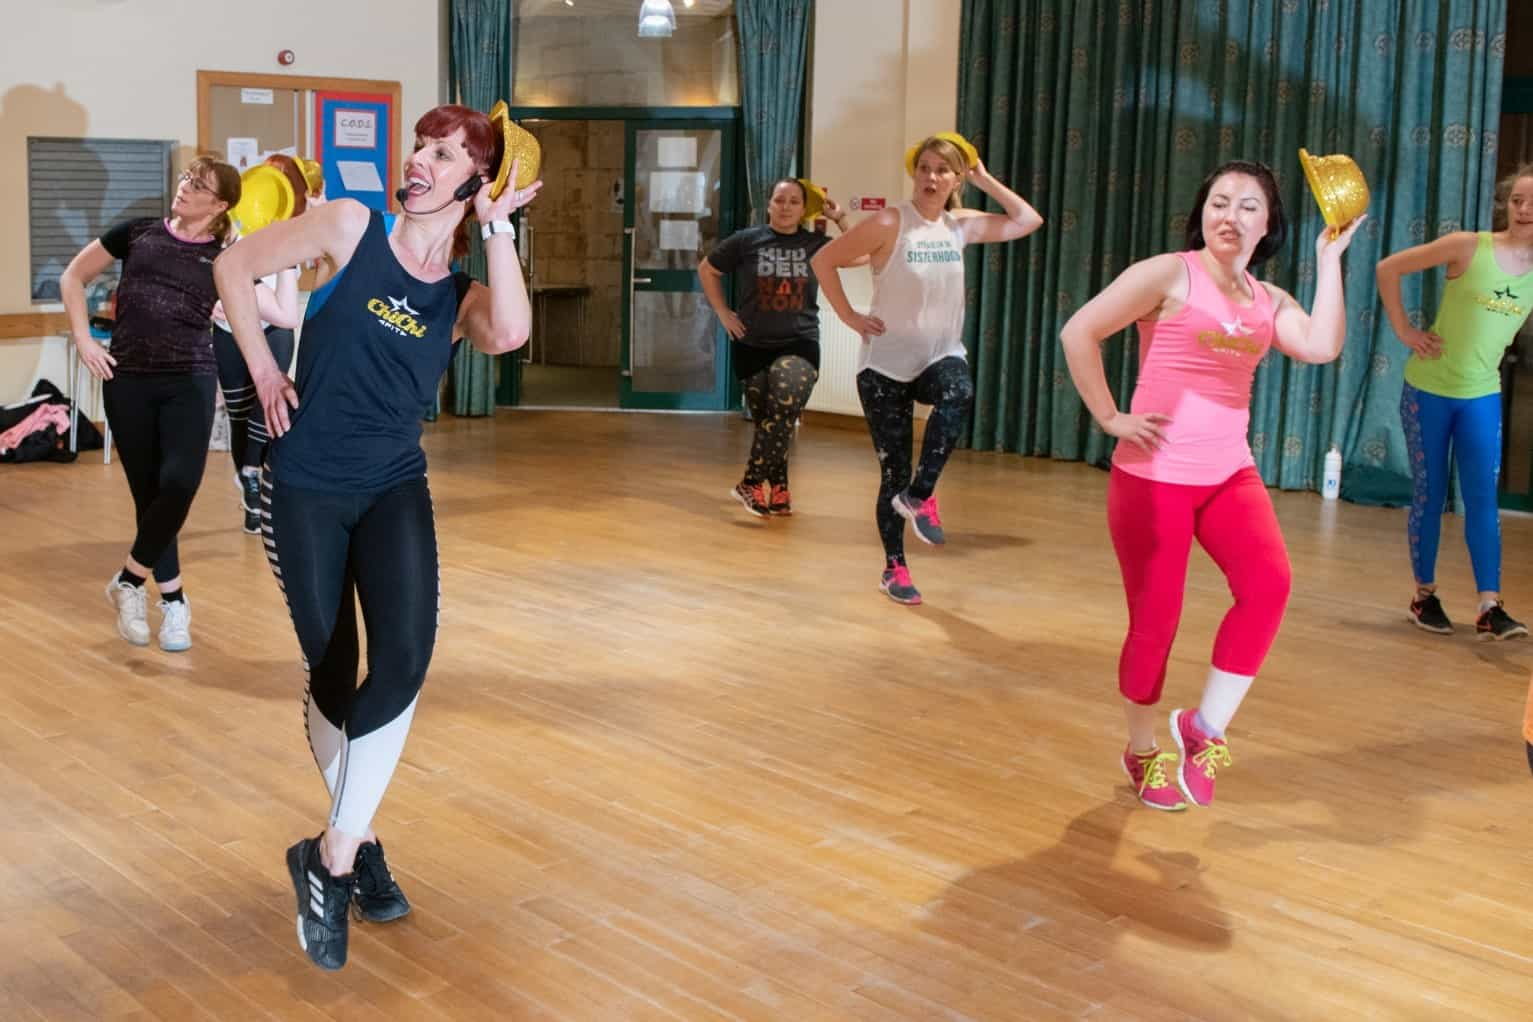 Musical Theatre Workout Routine with gold hats